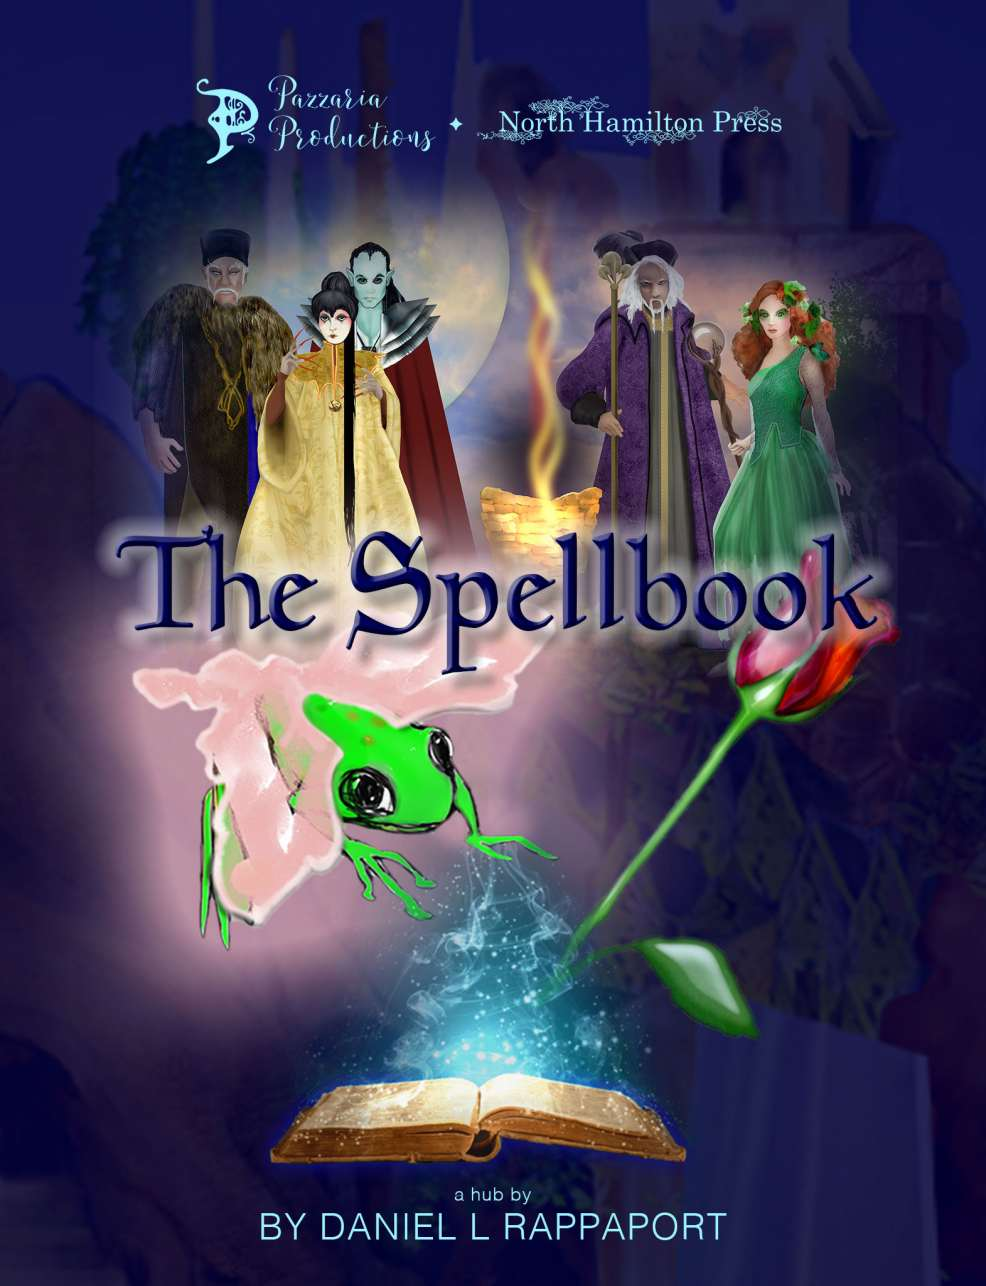 The_Spellbook_Cover-_A_Hub_for_PRLOG